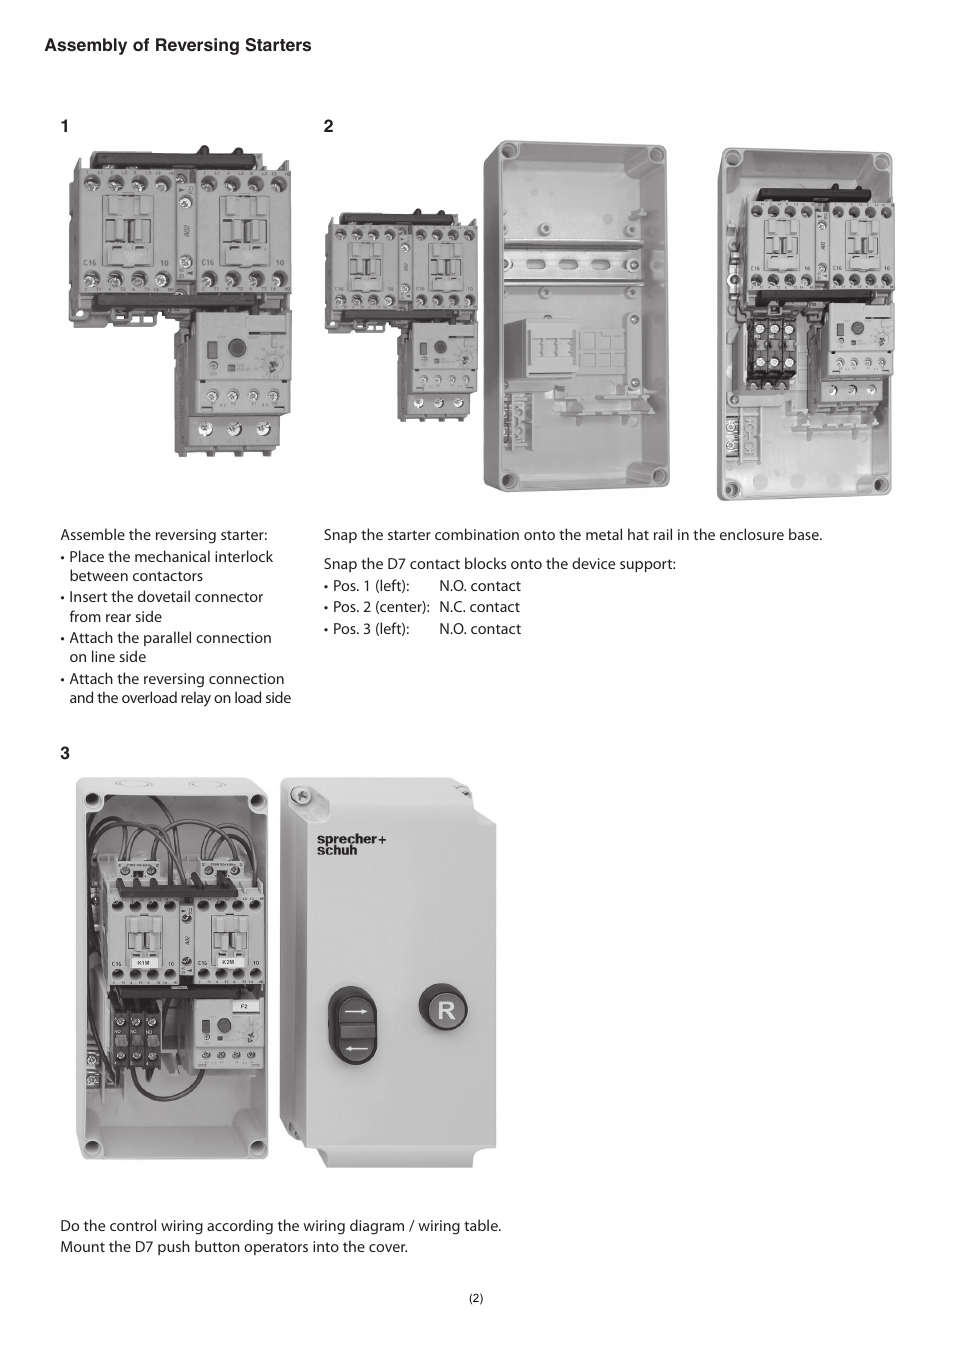 medium resolution of rockwell automation ks7 c0s4r sprecher schuh ks7 plastic encl for dol and reversing starter user manual page 2 4